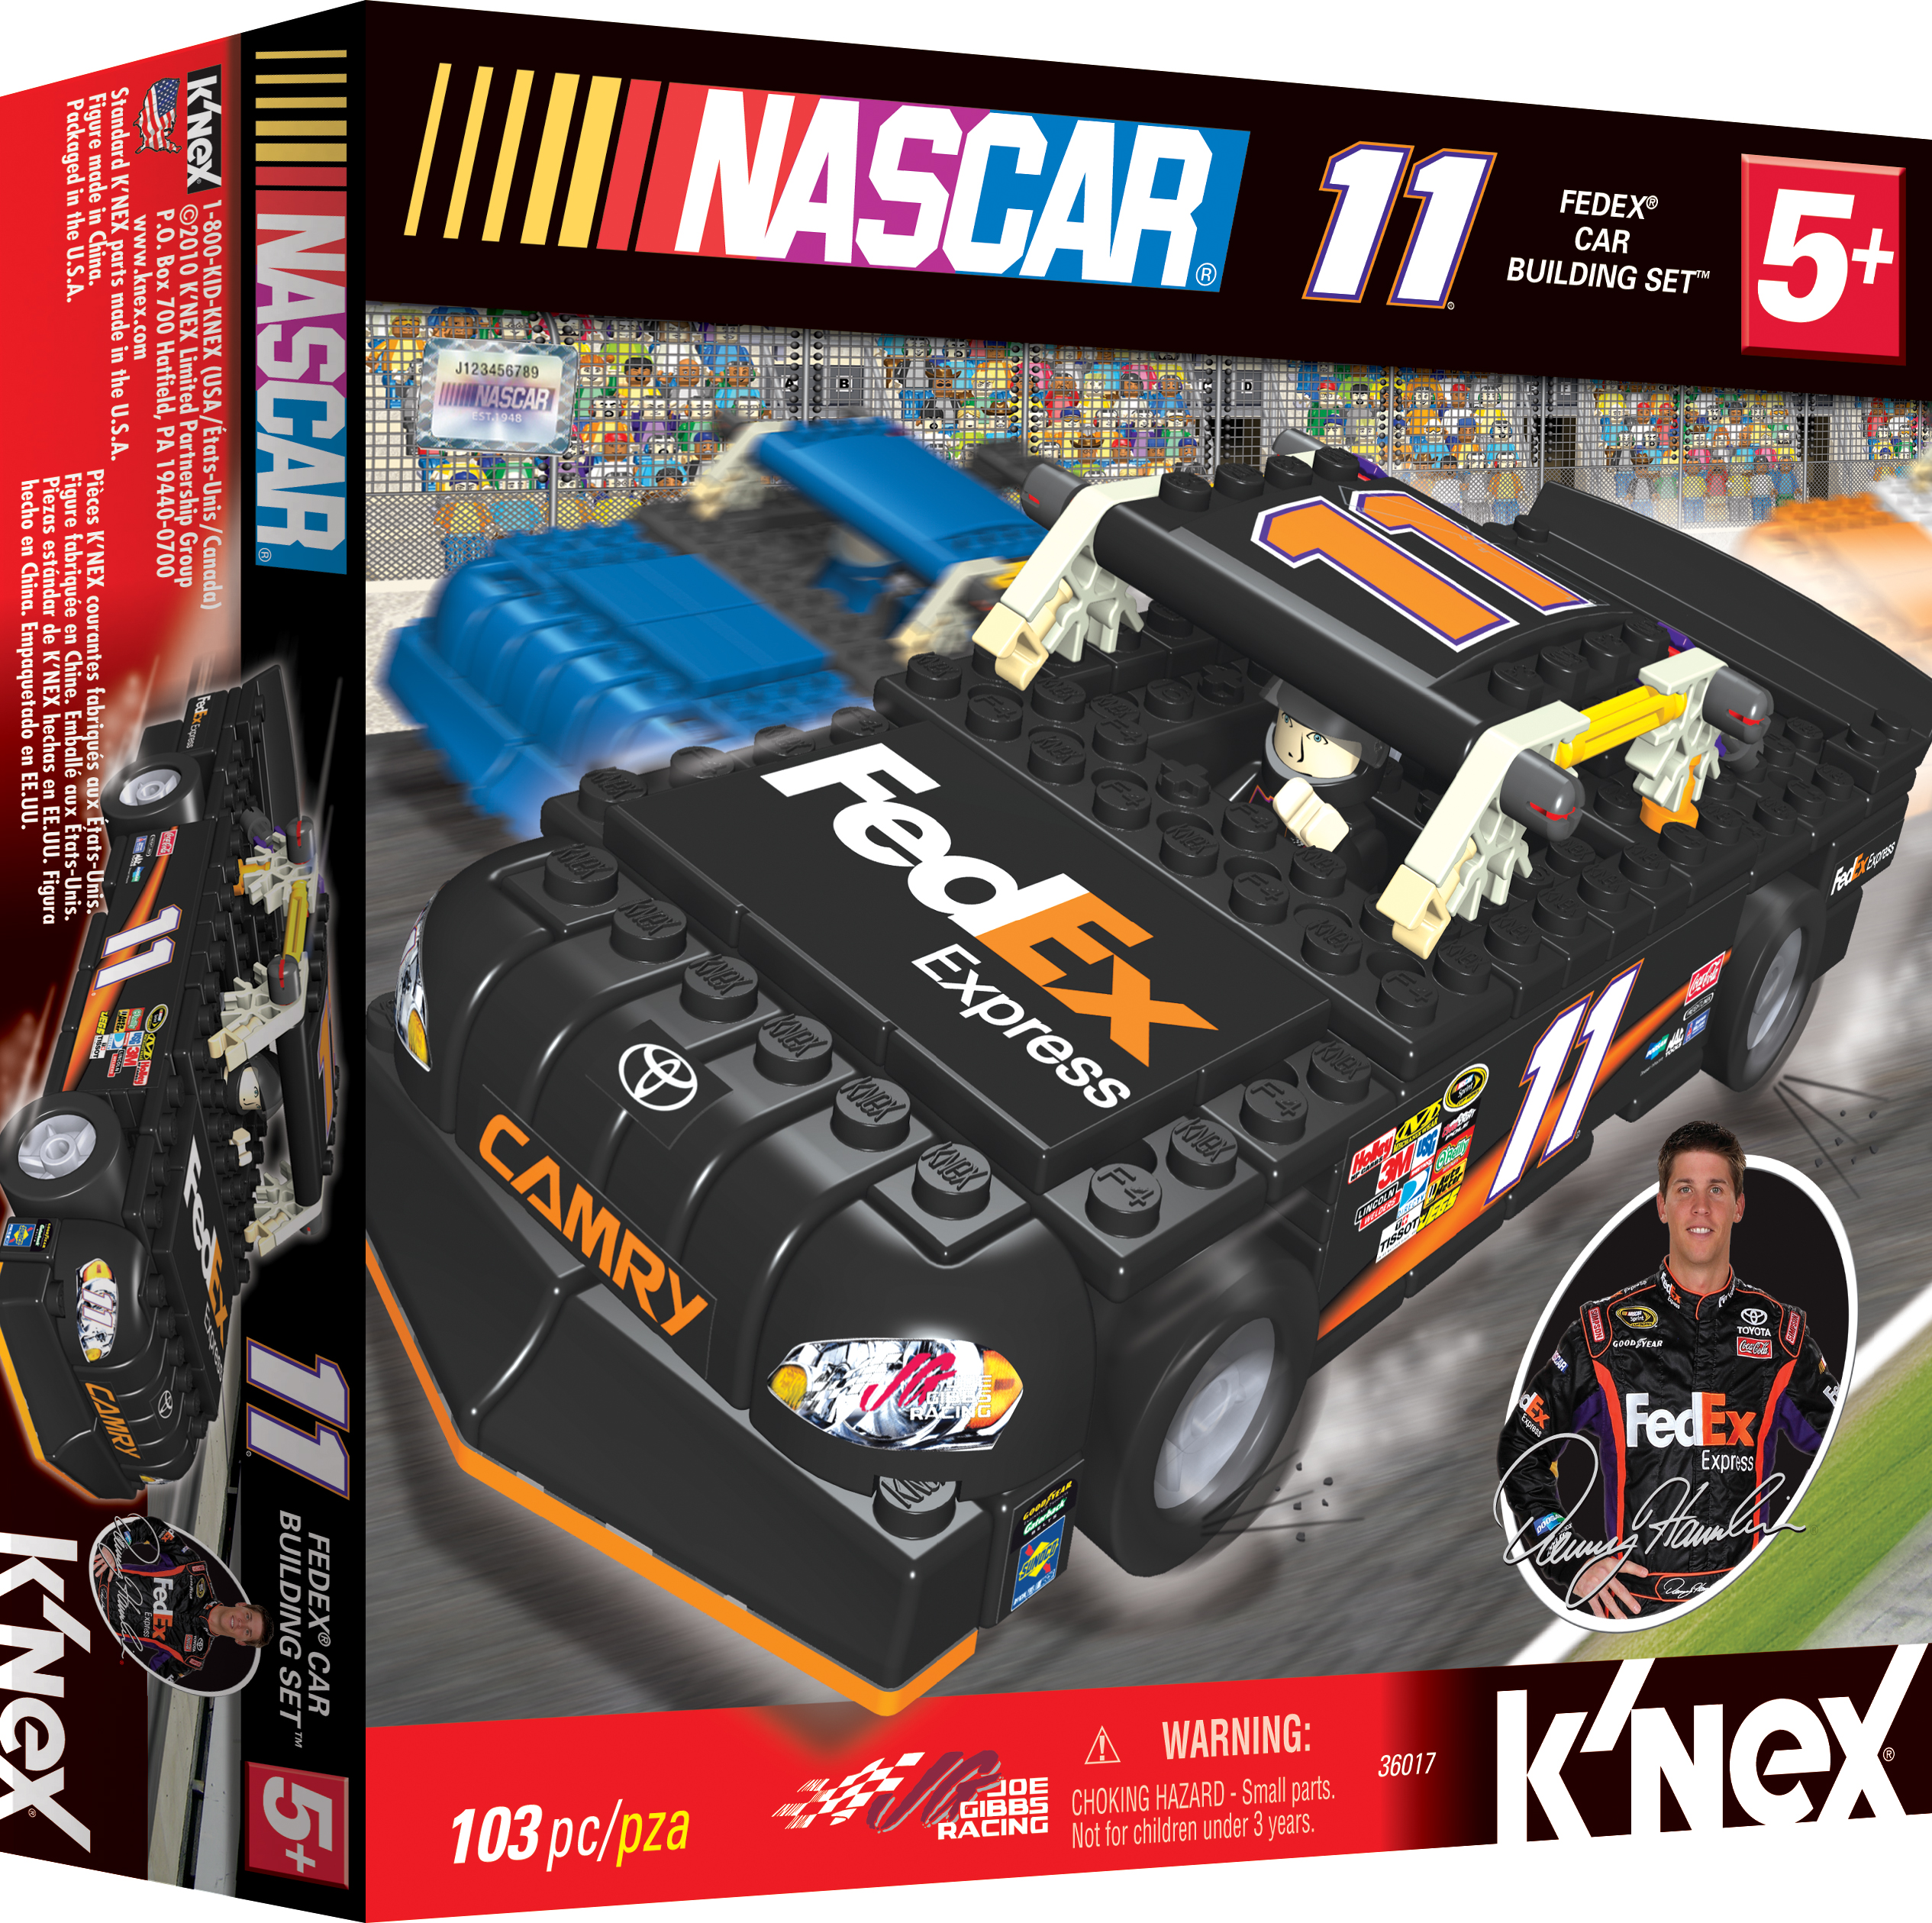 K'NEX #11 FEDEX CAR BUILDING SET